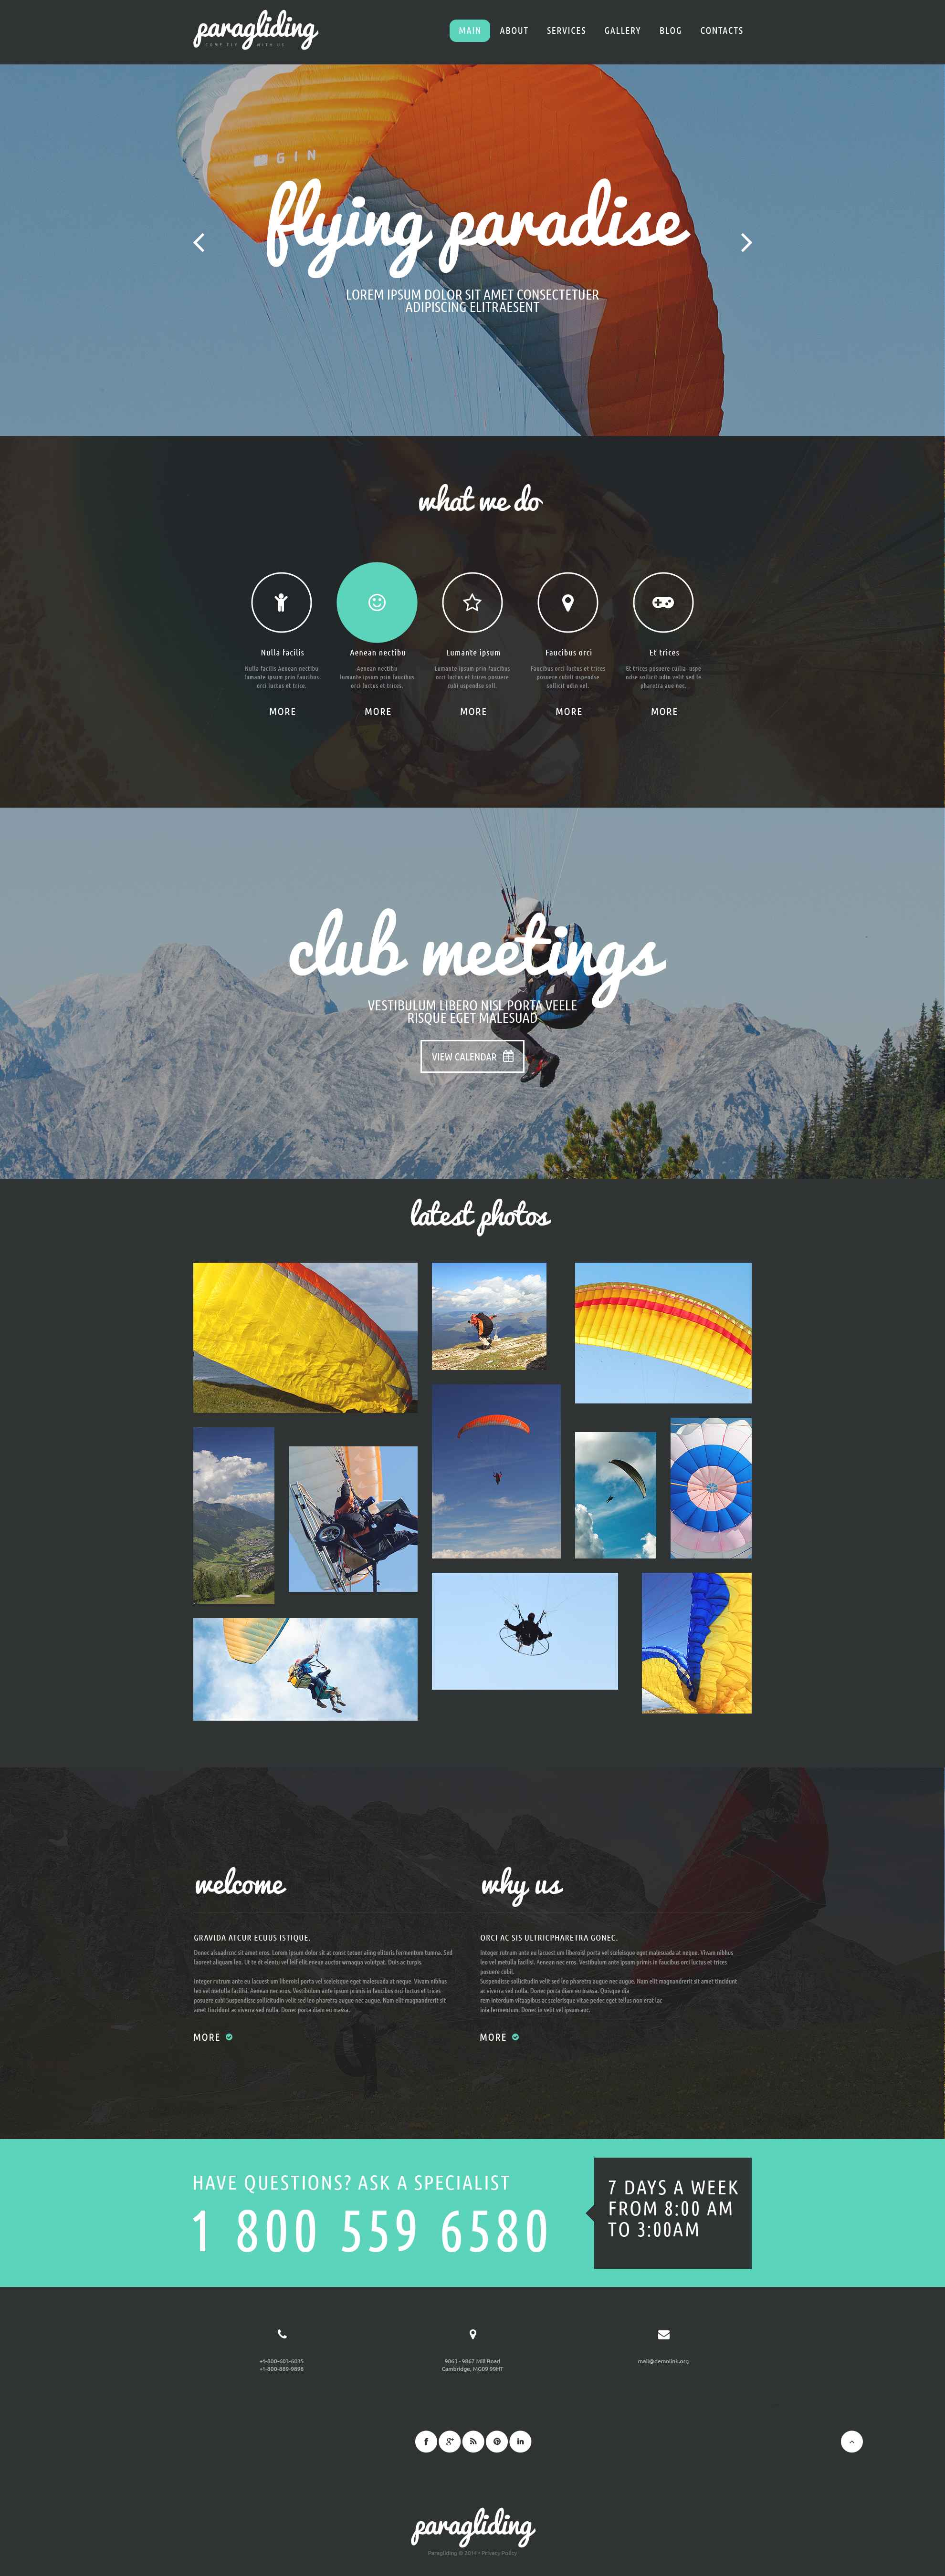 Paragliding Club Website Template #52686